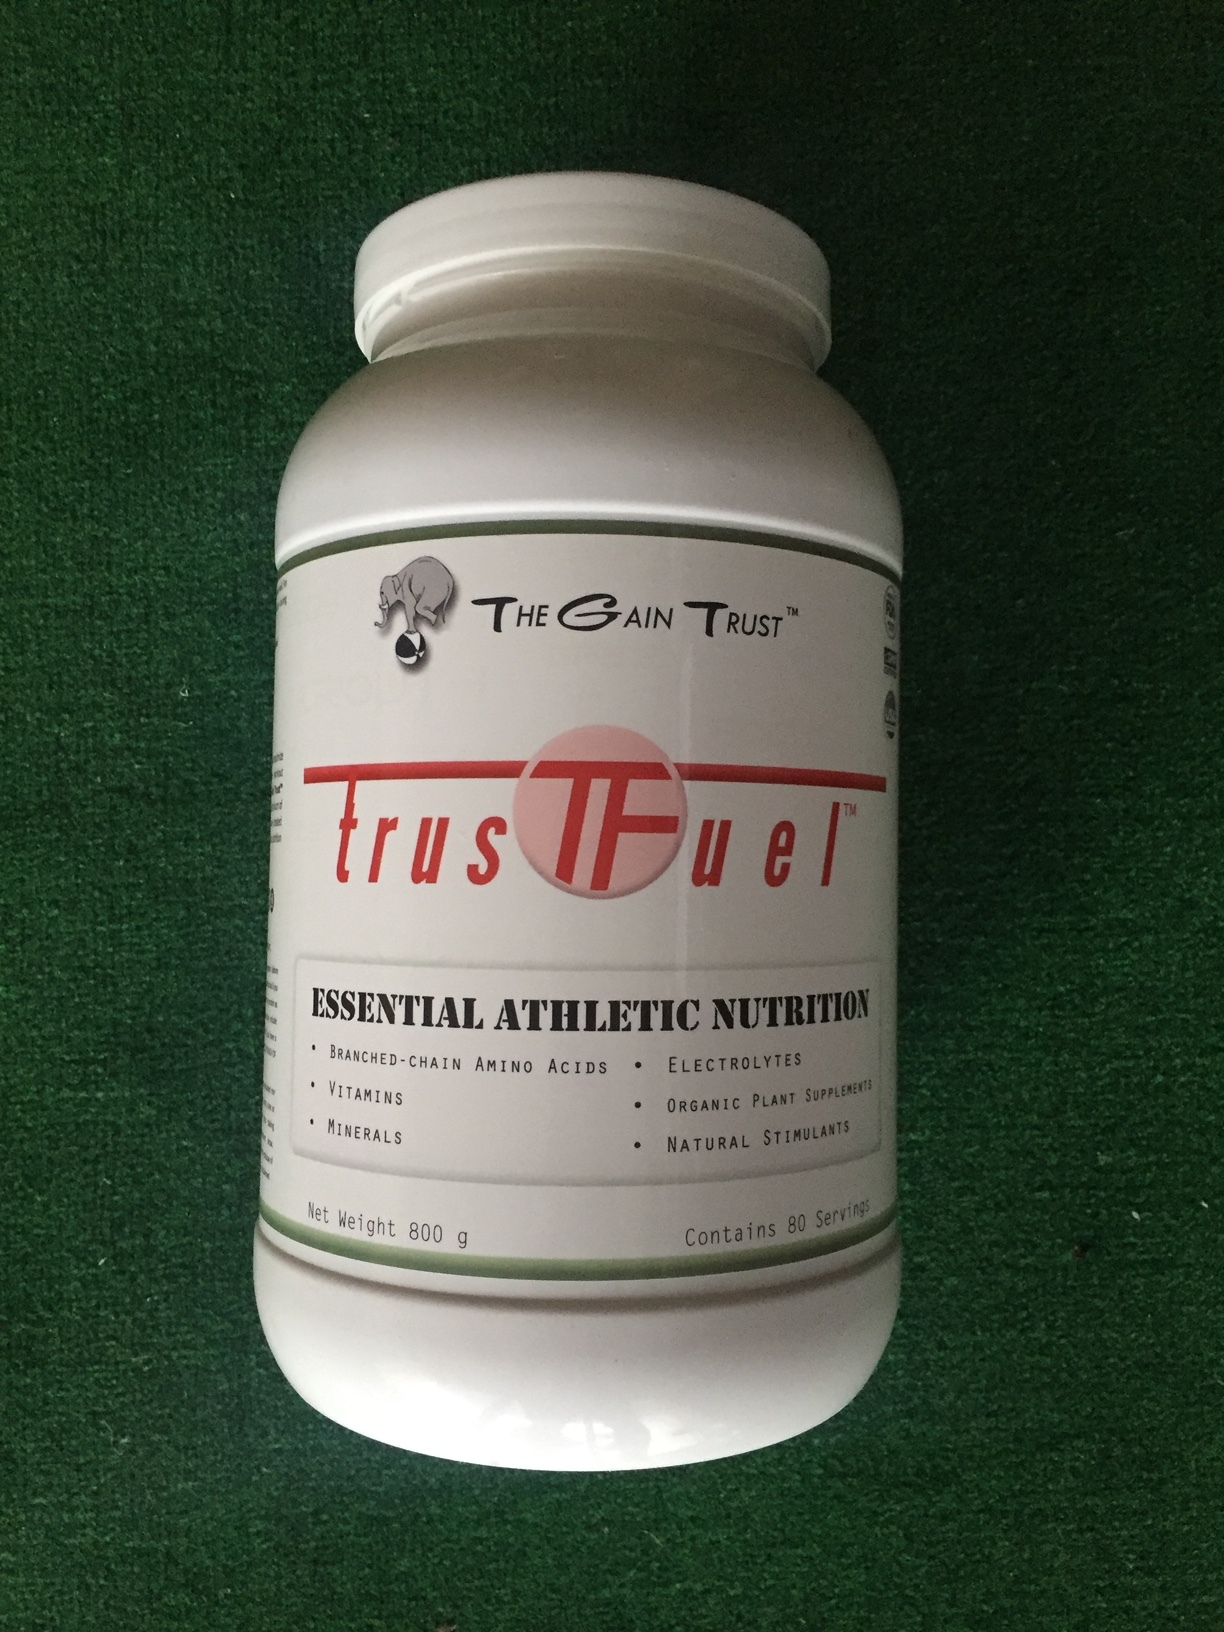 - An all encompassing nutritional powder that turns water into performance hydration. Research-backed ingredients at studied dosages with no fillers. This isn't a pre-workout, this is Essential Athletic Nutrition. This is TrustFuel™.Our mission is to provide athletes the nutrition they need to maximize athletic performance. Traditional sports drinks and workout supplements are filled with sugars, stimulants, and useless fillers. The Gain Trust™ provides full transparency into our ingredients. After countless hours of research, numerous trials of supplementation, and consultations with many qualified professionals, TrustFuel™ was born.CLICK HERE TO PURCHASE YOUR FUEL!